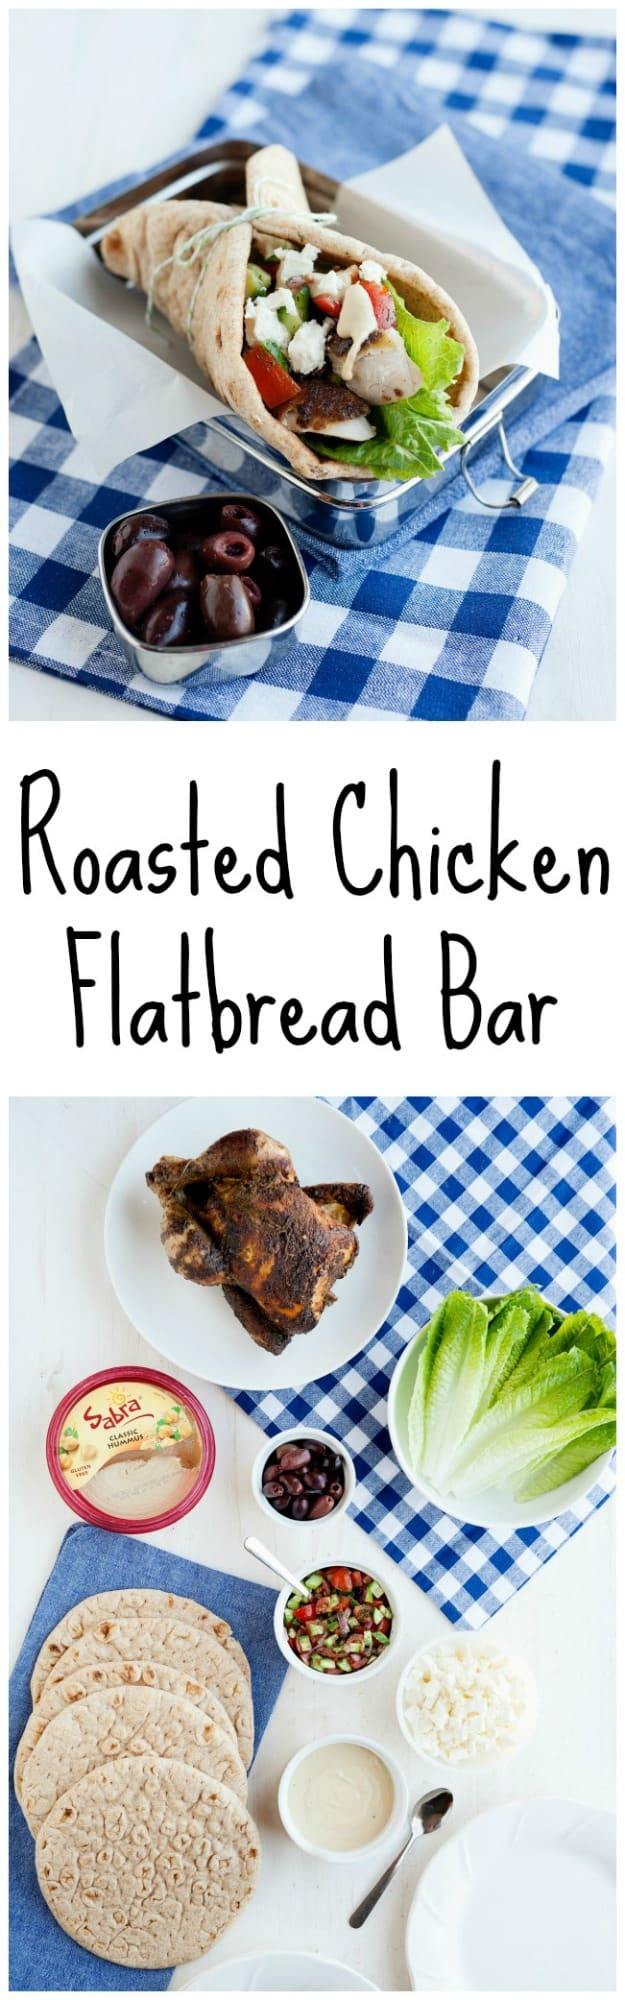 This roasted chicken flatbread recipe is perfect for easy entertaining. It has all the Mediterranean flavors and a bonus hummus dressing recipe.